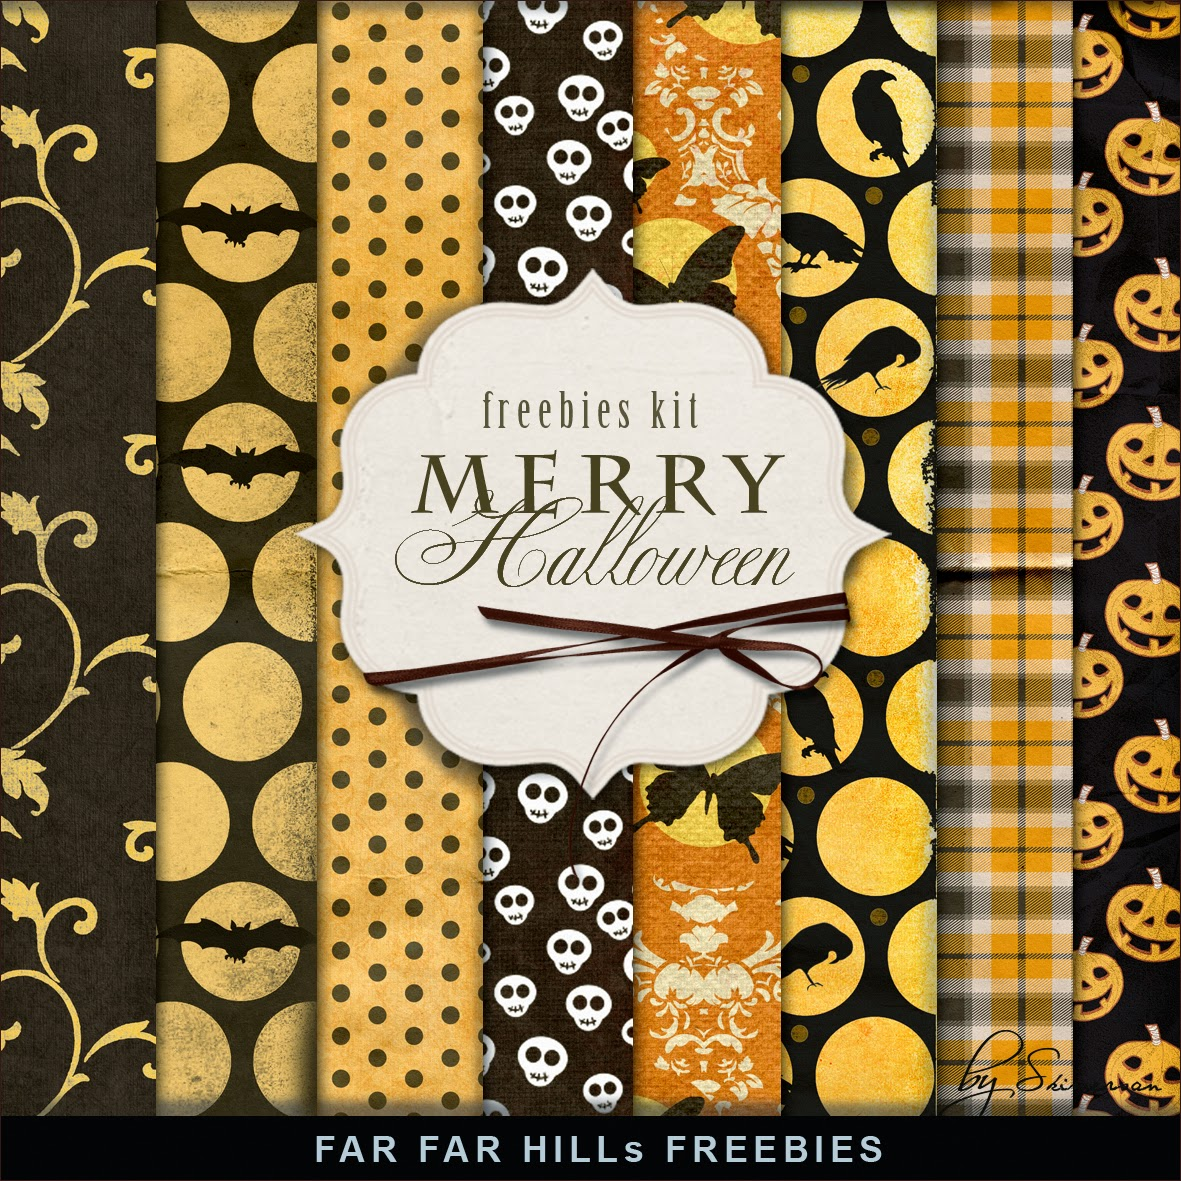 Freebies Kit of Paper - Merry Halloween.